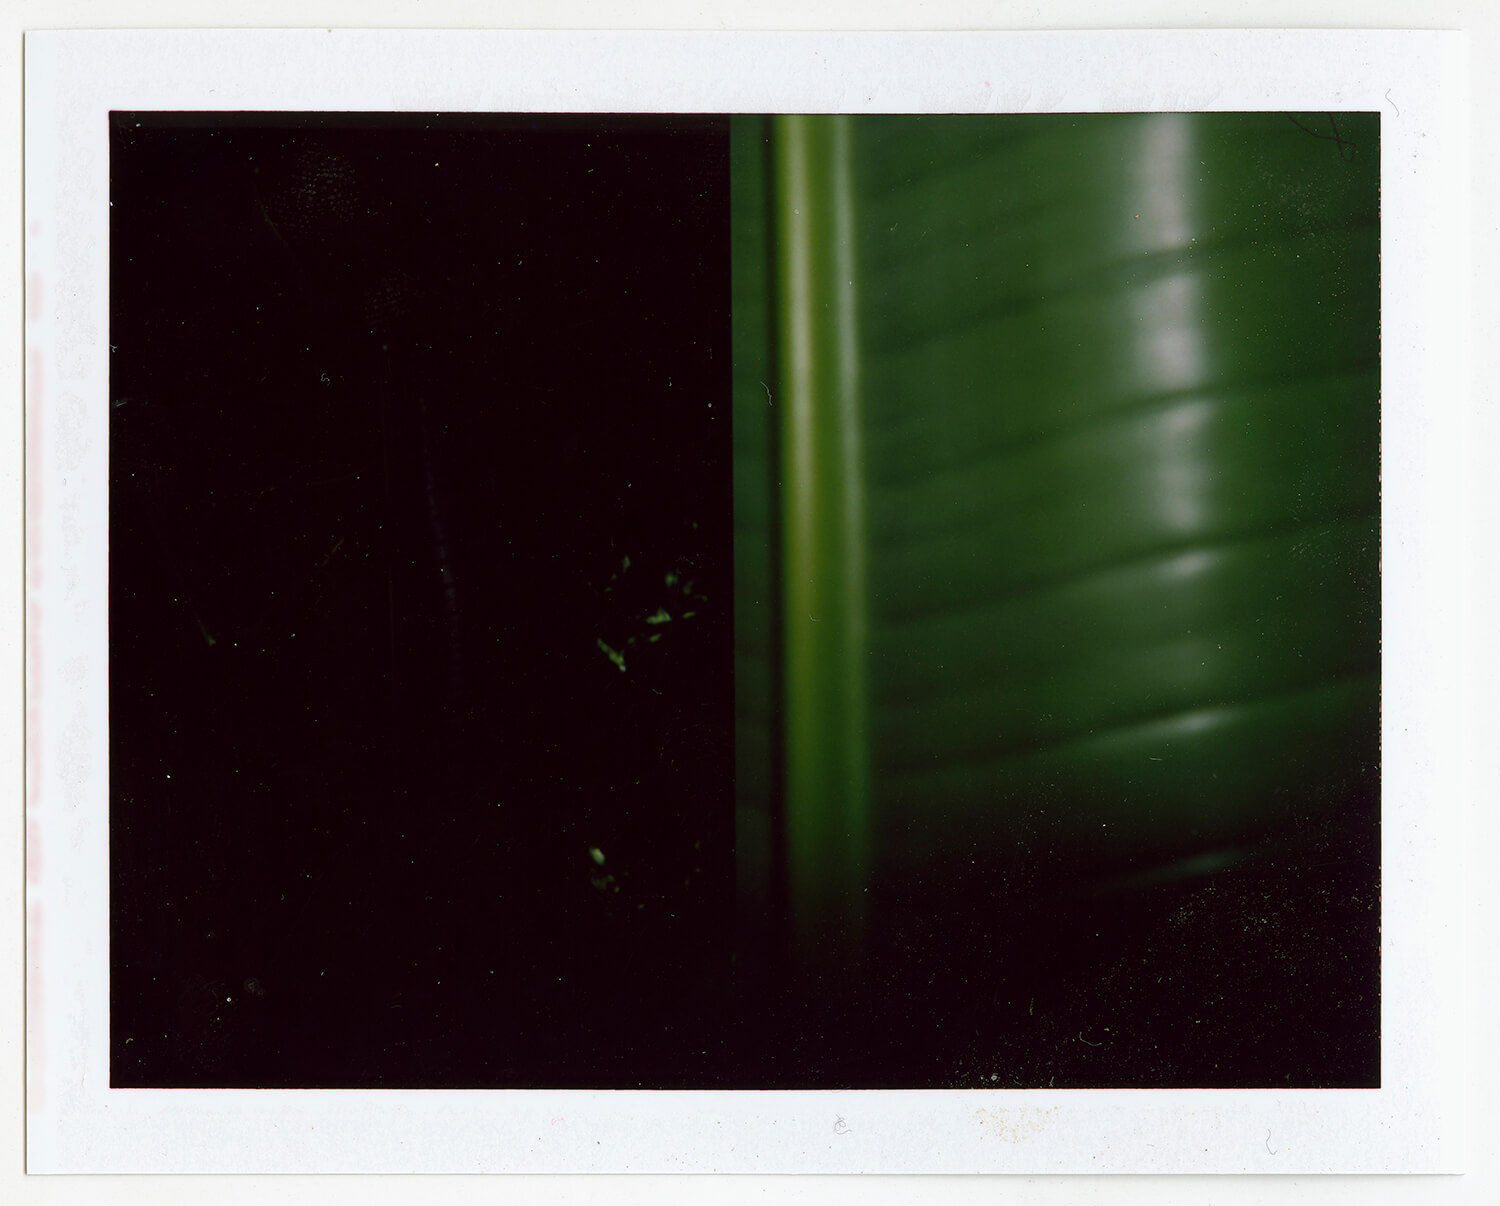 I.D.059, The Polaroid Revolutionary Workers, 2013, Polaroid Picture, 107mm x 86mm